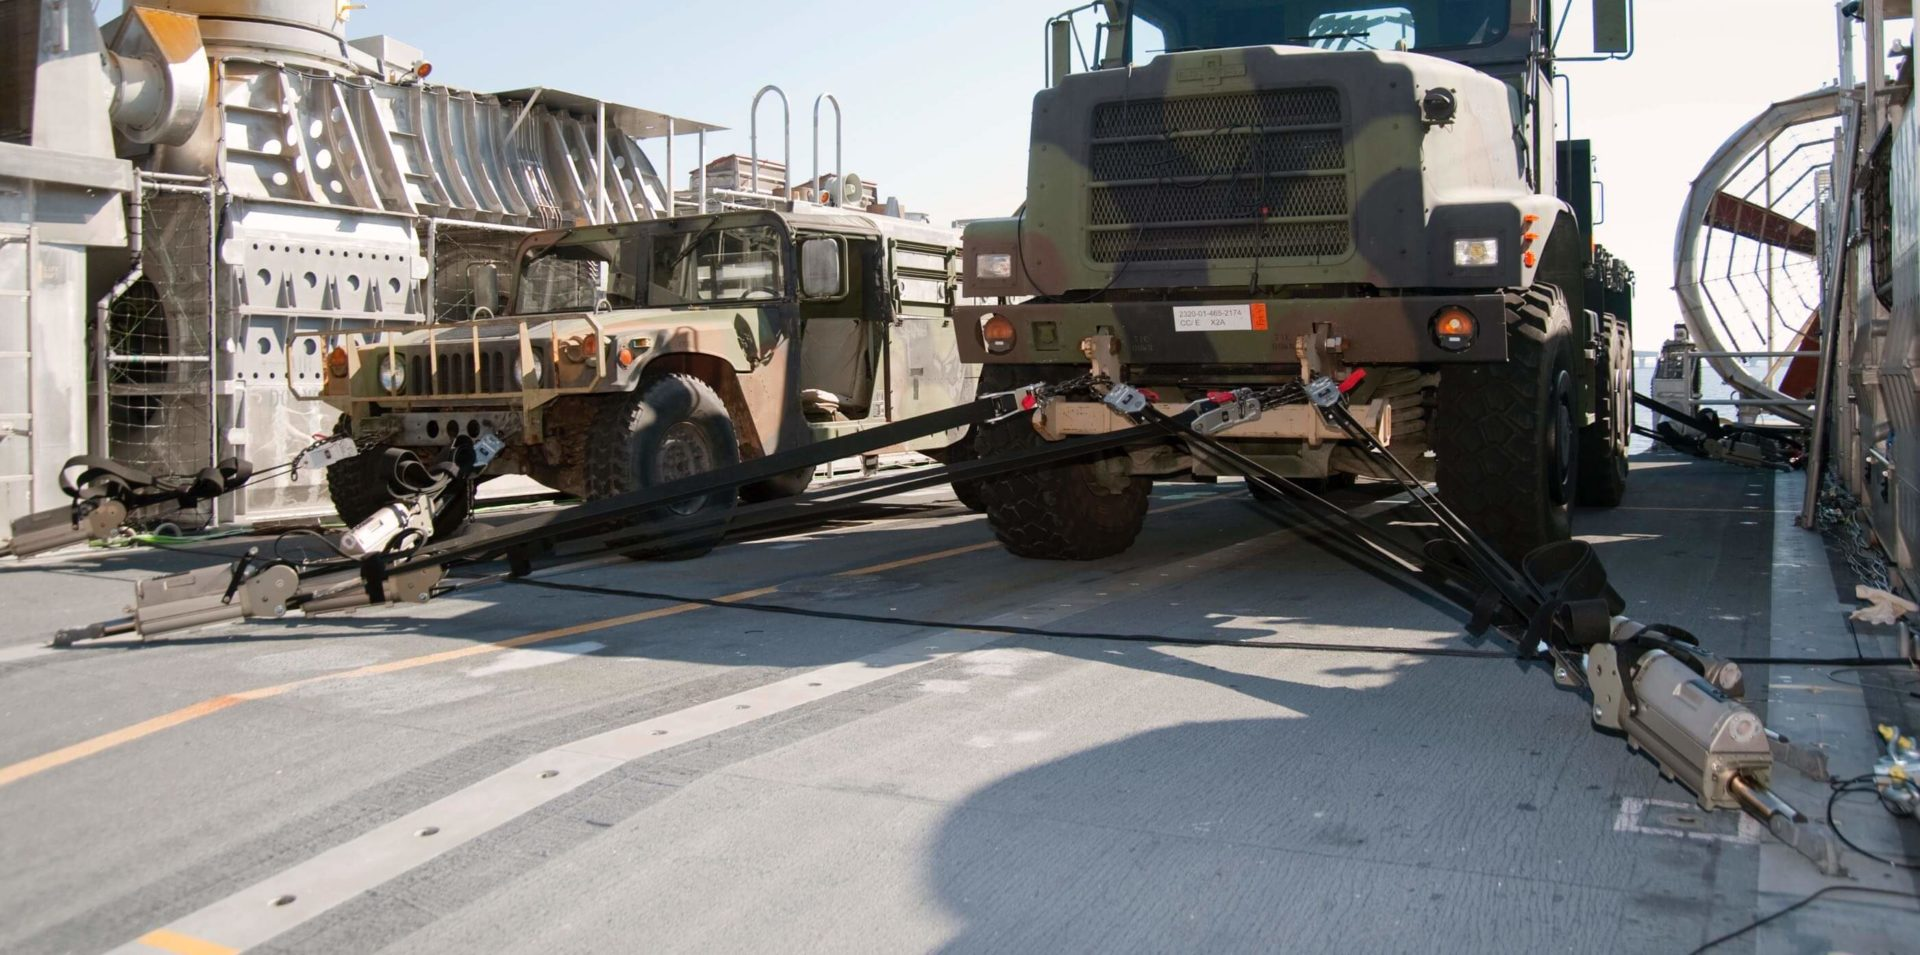 A military transport vehicle with Cargo Tie-downs in use